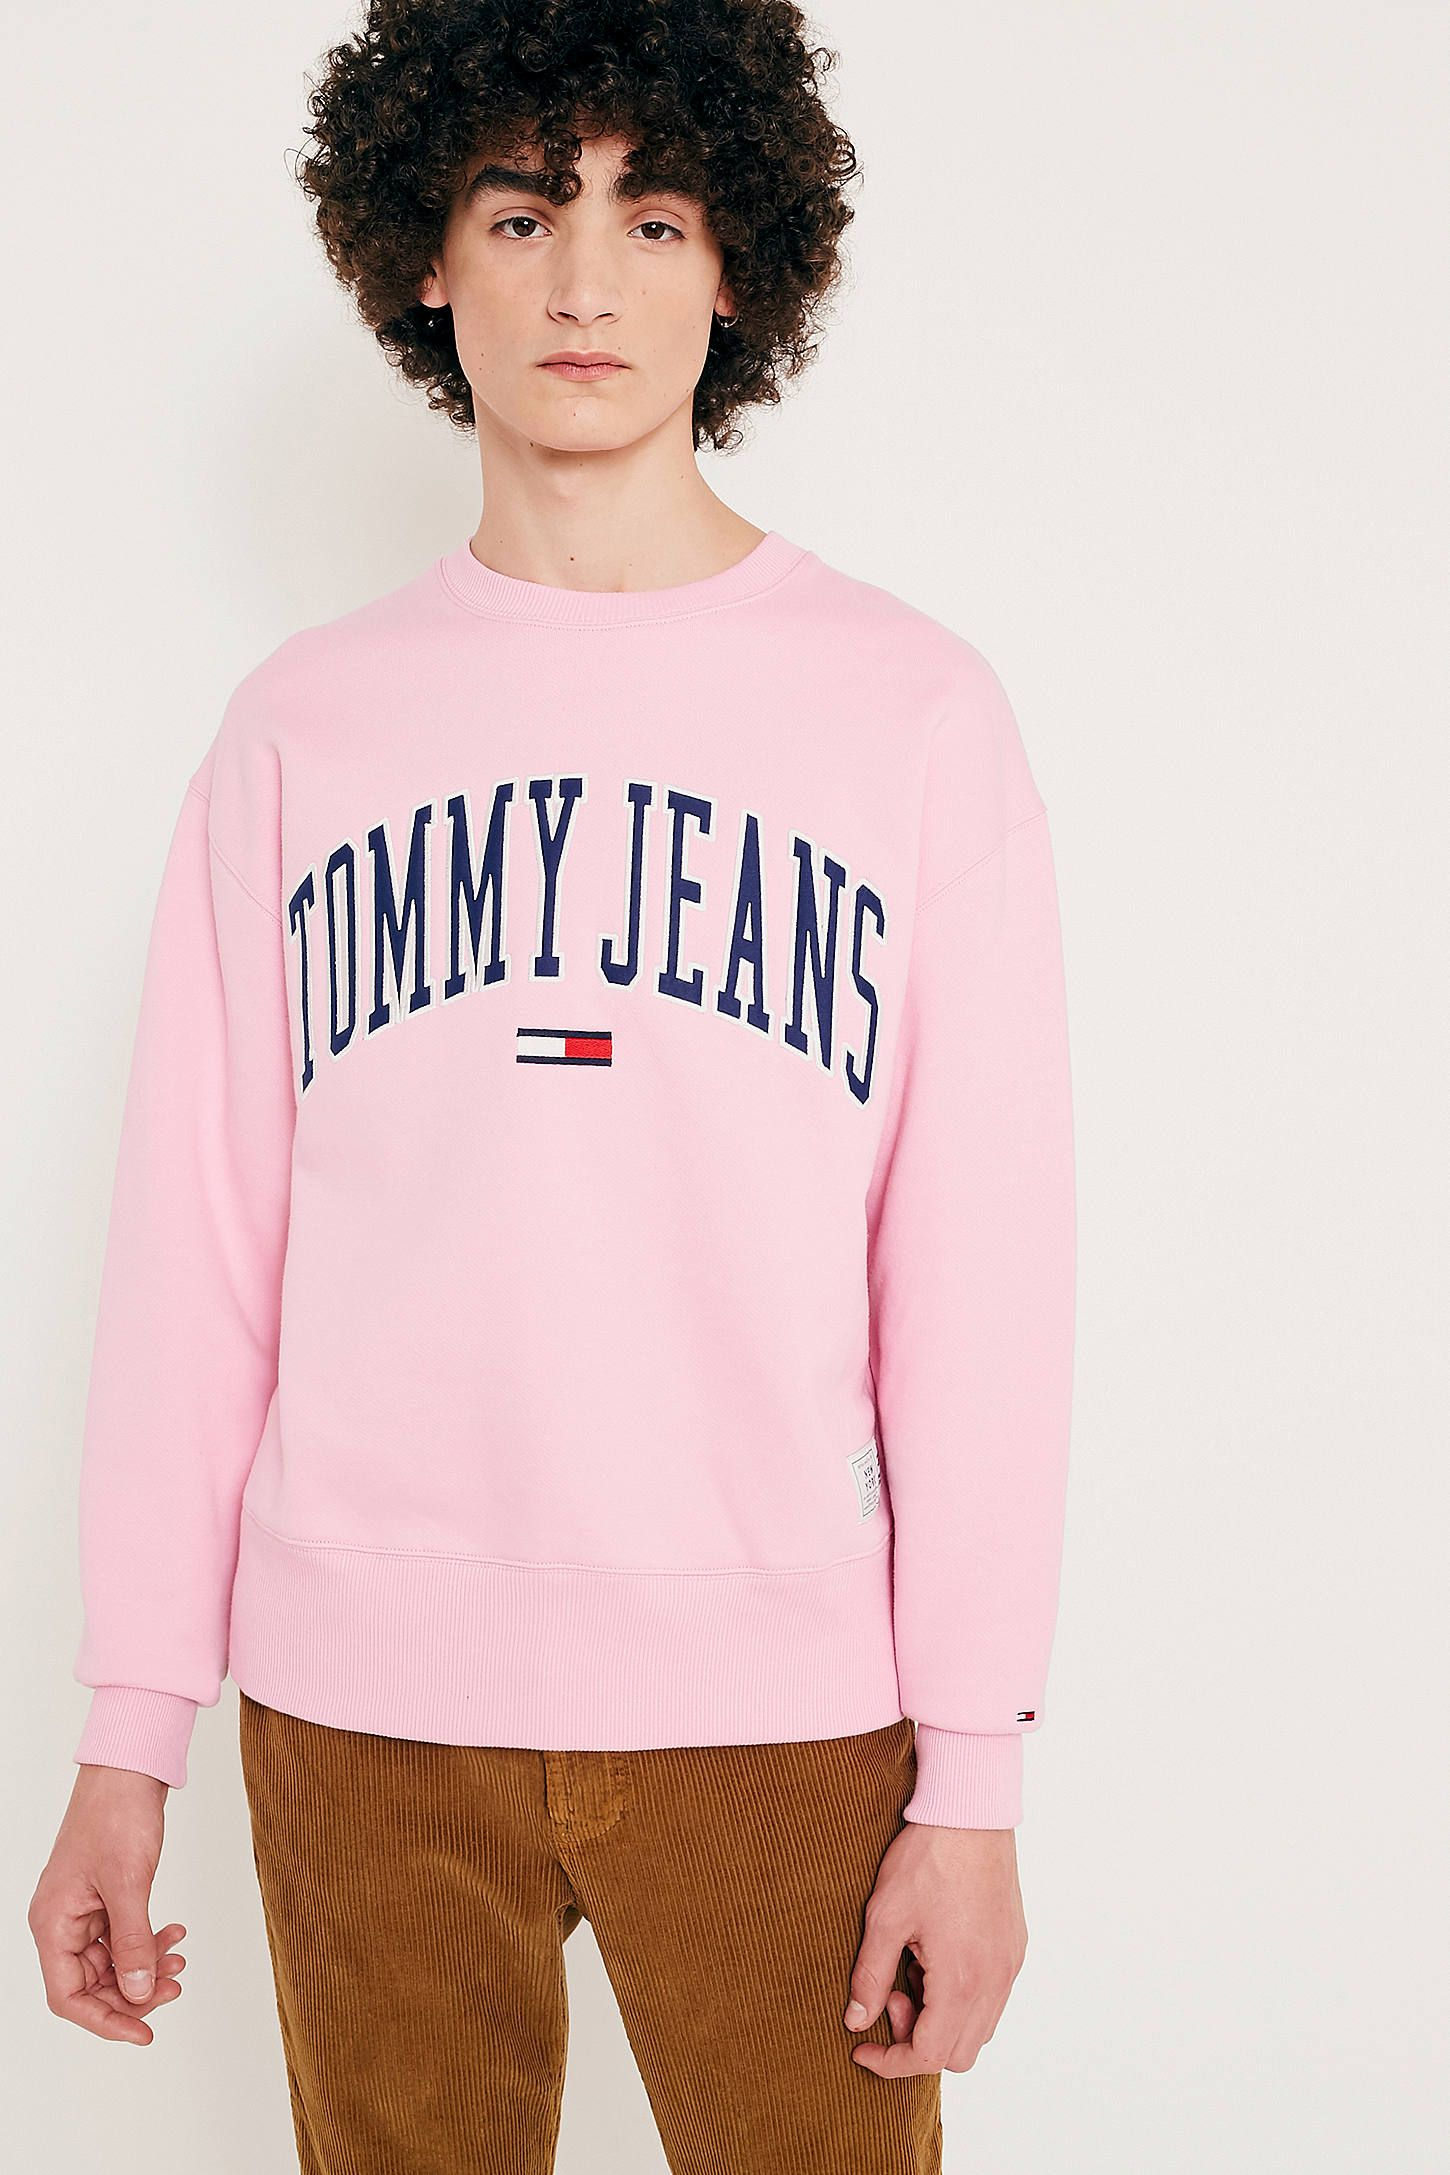 8a96bd9e81fae0 Tommy Jeans Collegiate T Shirt Pink